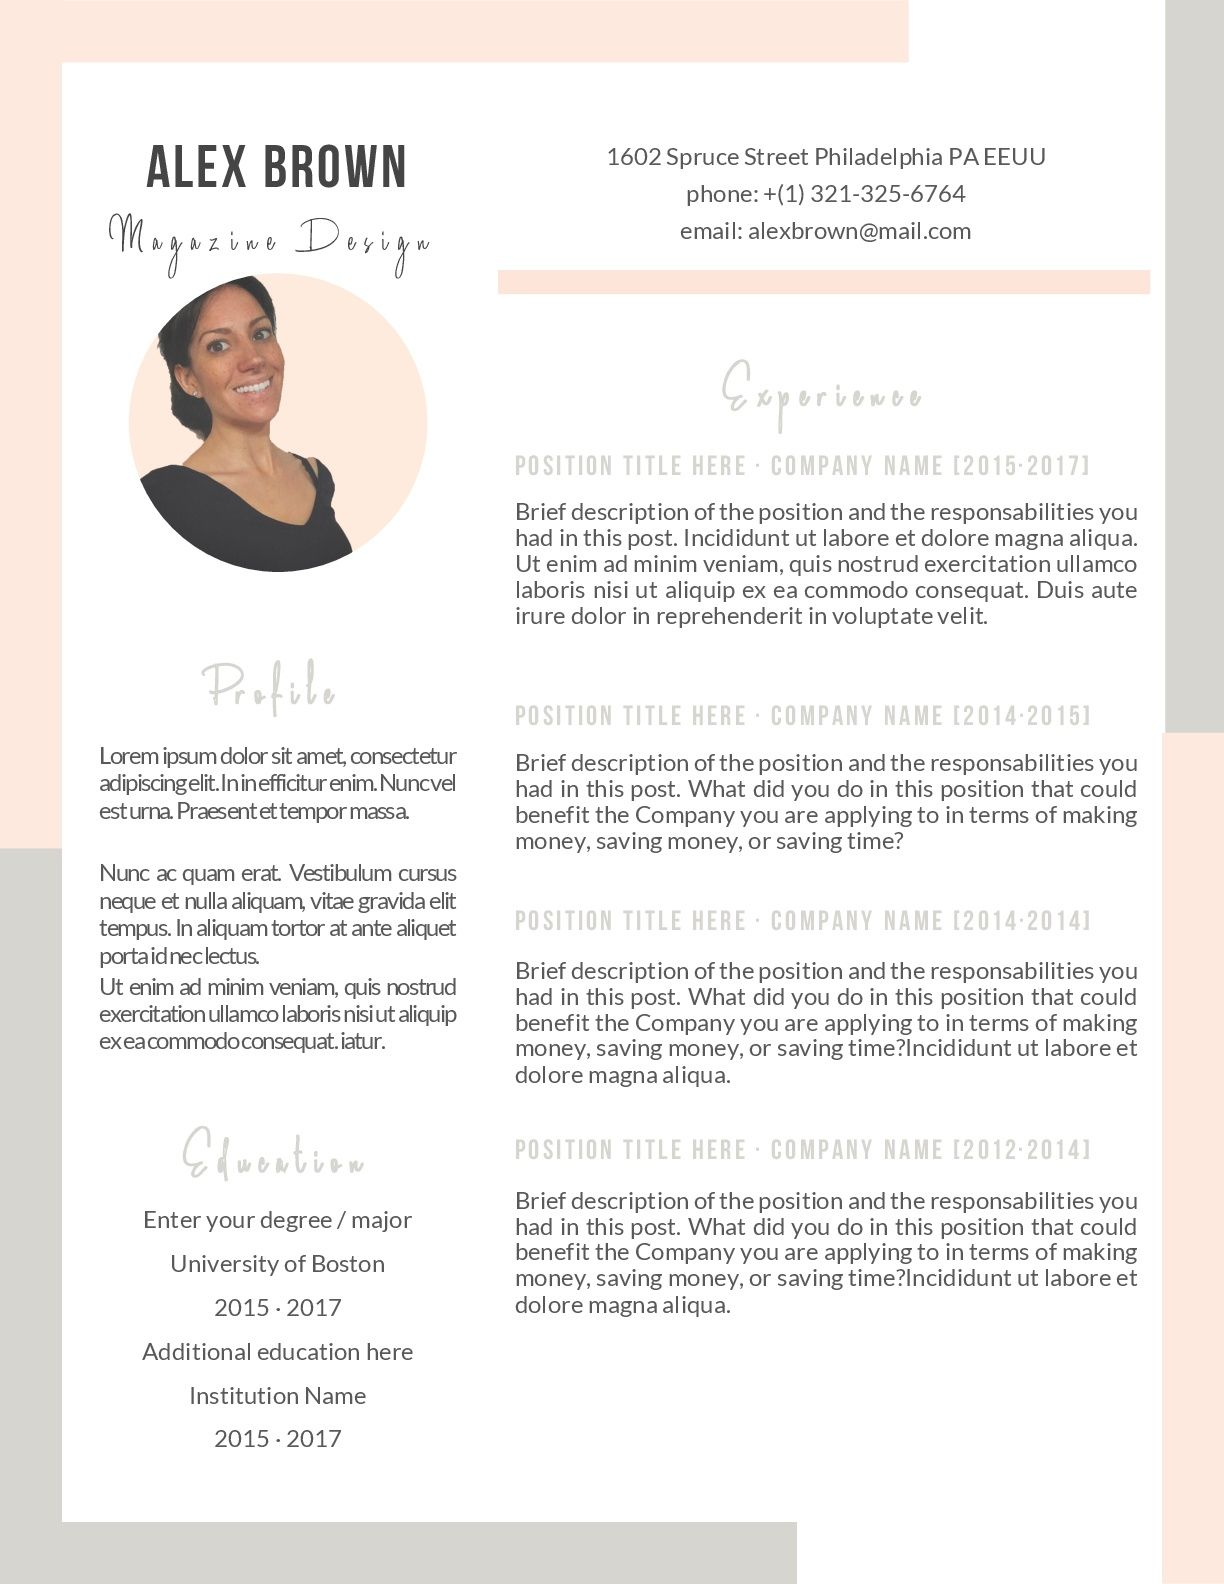 Perfect template resume for anyone looking for a job